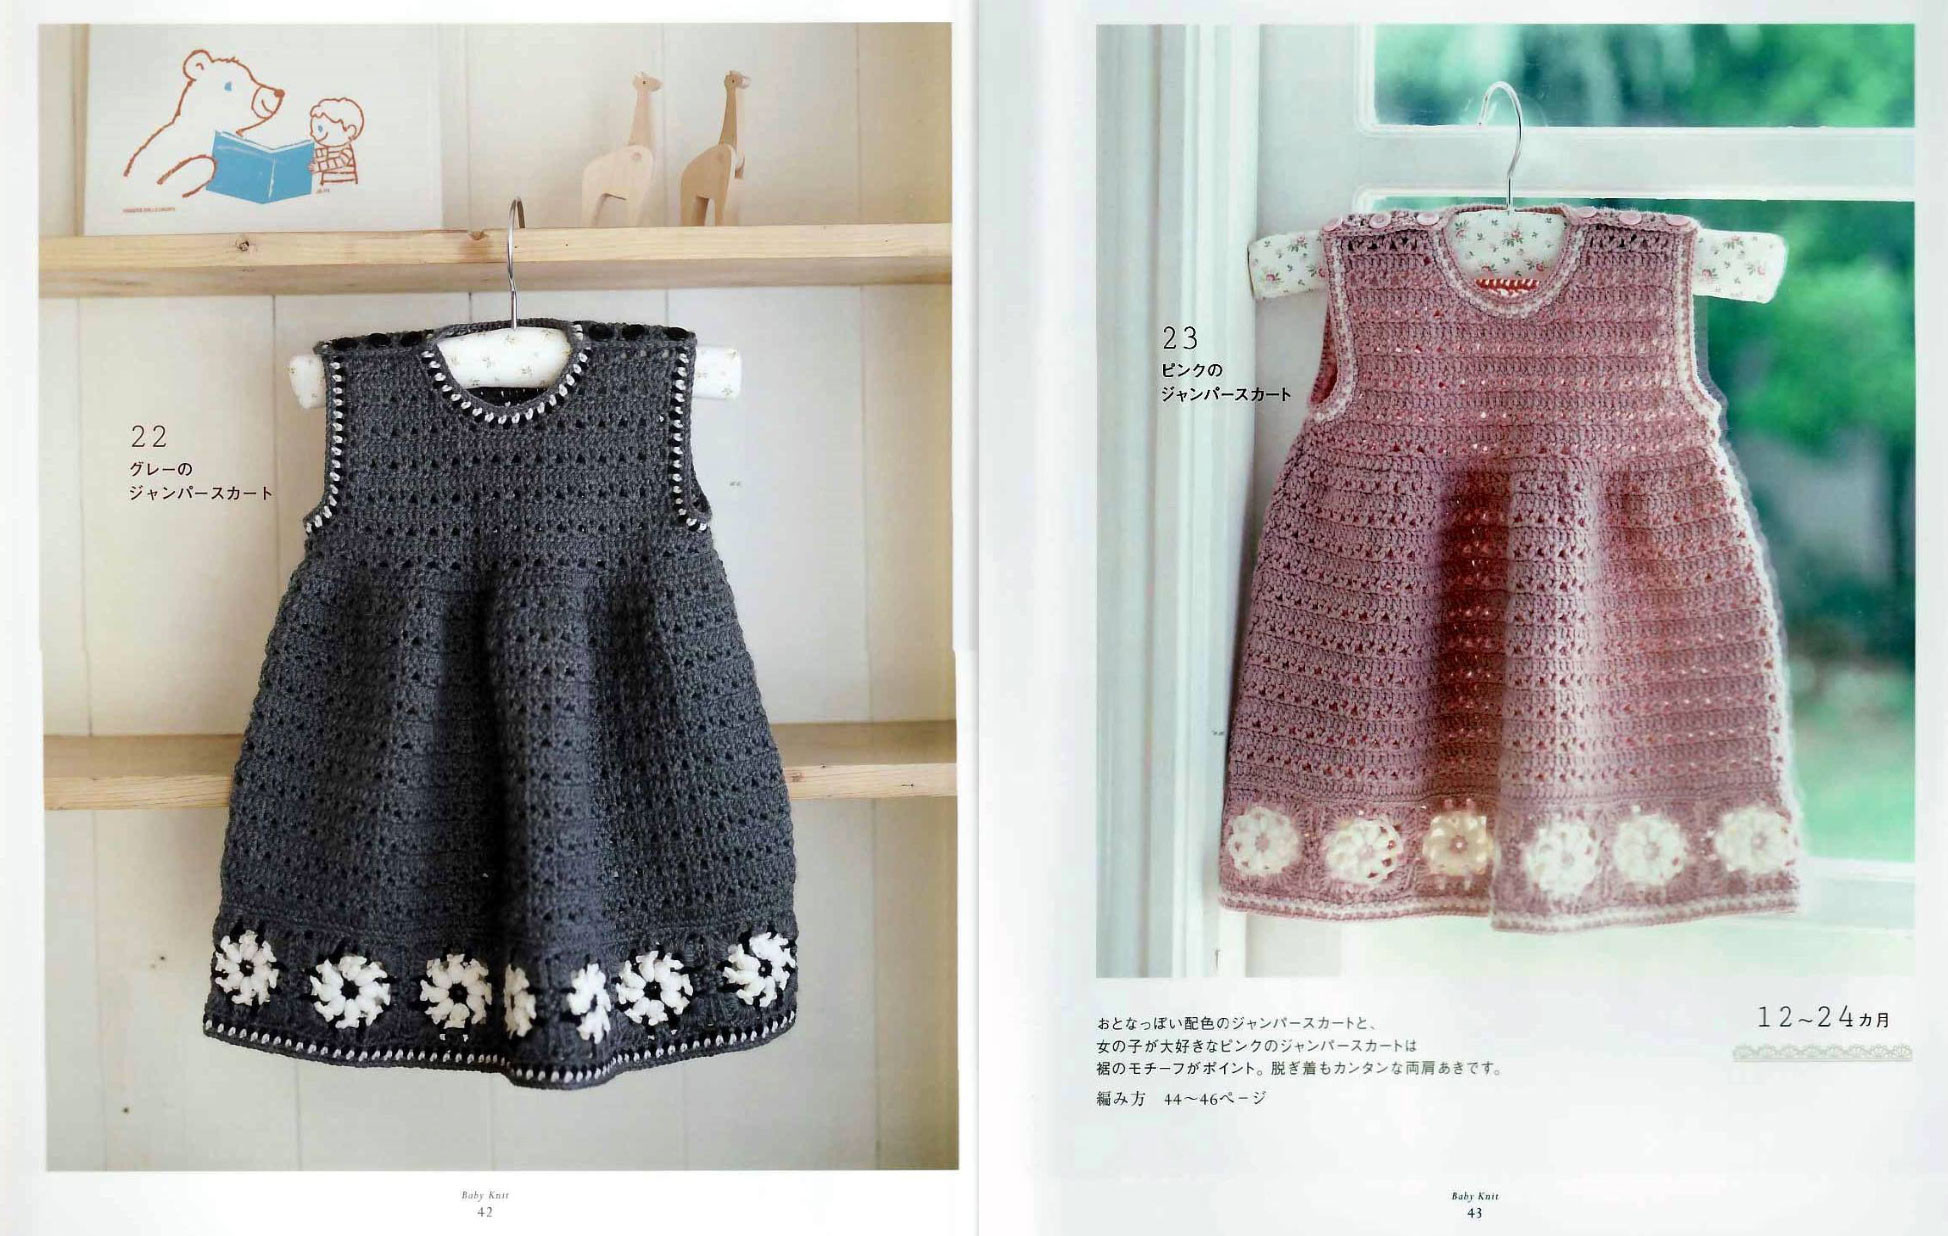 Awesome Cute Japanese Baby Crochet Dress Pattern ⋆ Crochet Kingdom Free Crochet Dress Patterns Of Unique 43 Images Free Crochet Dress Patterns